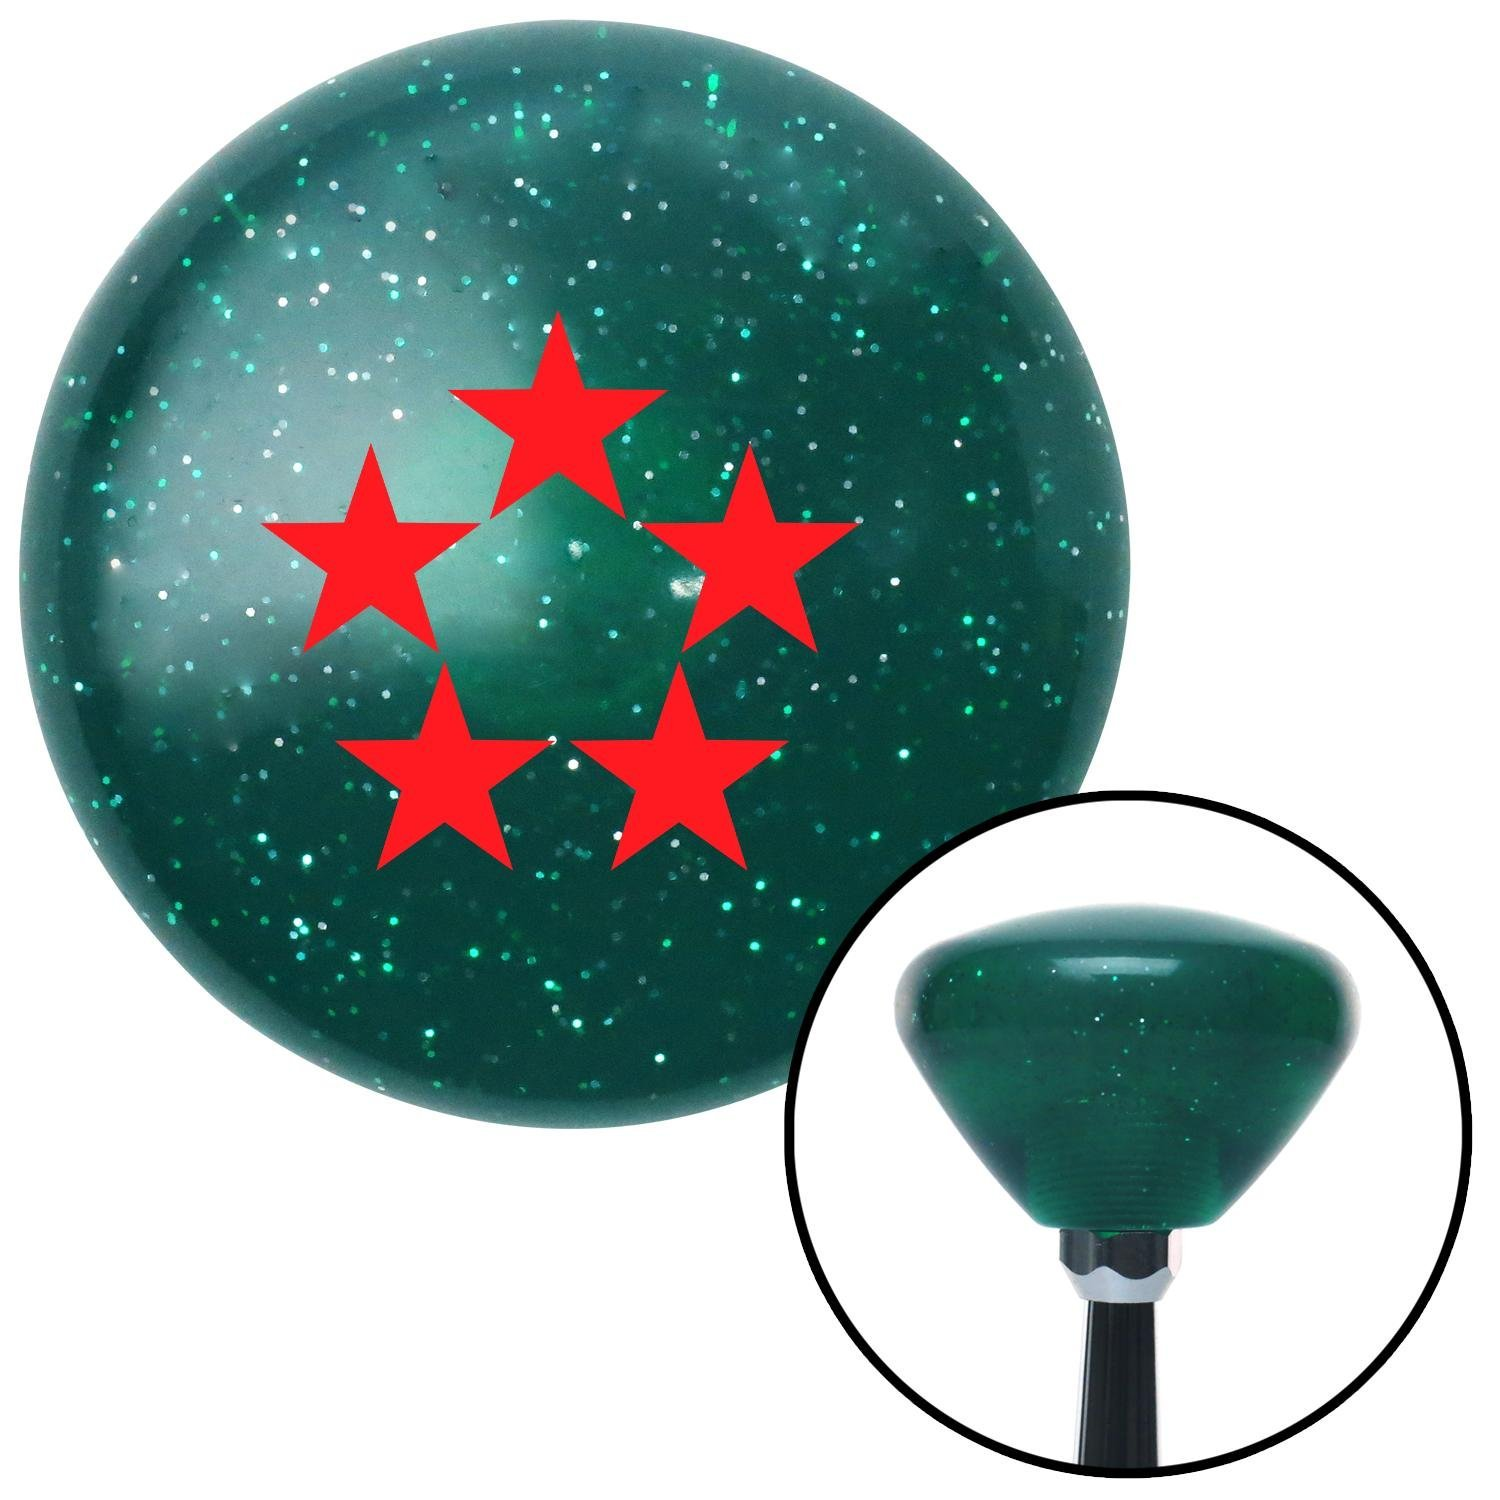 Red Officer 11 - General of Air Force American Shifter 203703 Green Retro Metal Flake Shift Knob with M16 x 1.5 Insert